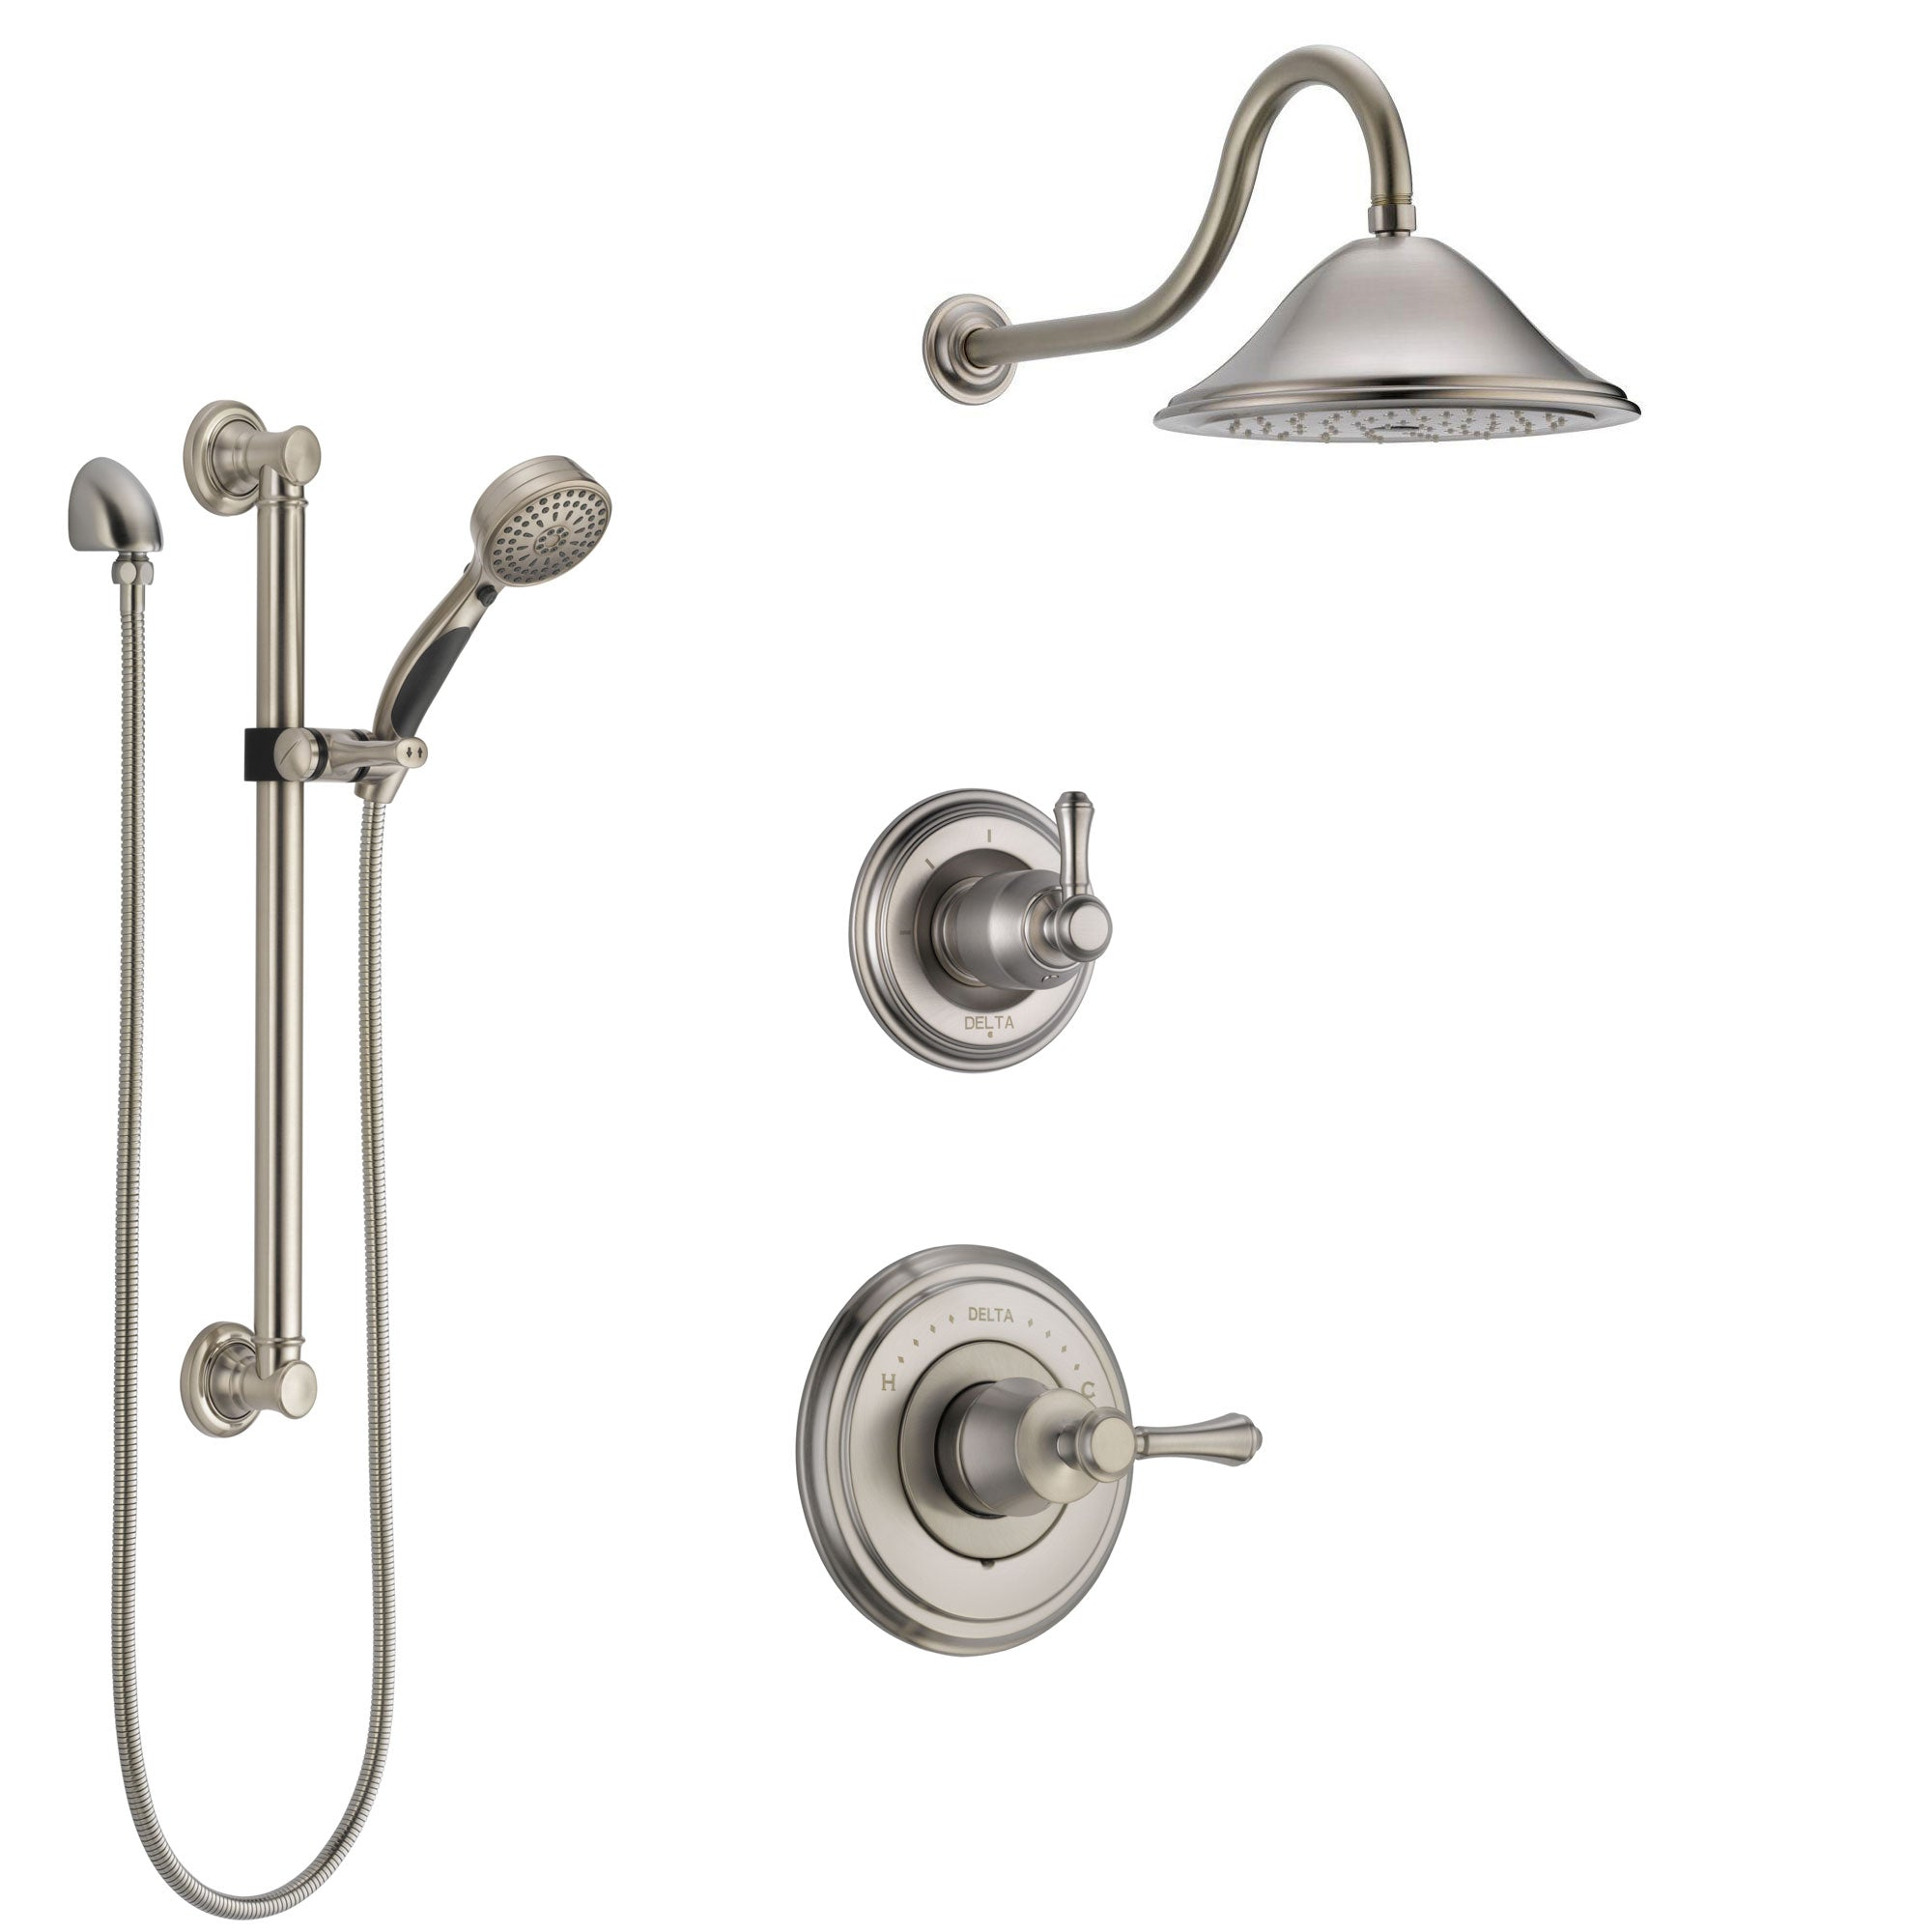 Delta Cassidy Stainless Steel Finish Shower System with Control Handle, 3-Setting Diverter, Showerhead, and Hand Shower with Grab Bar SS14973SS1